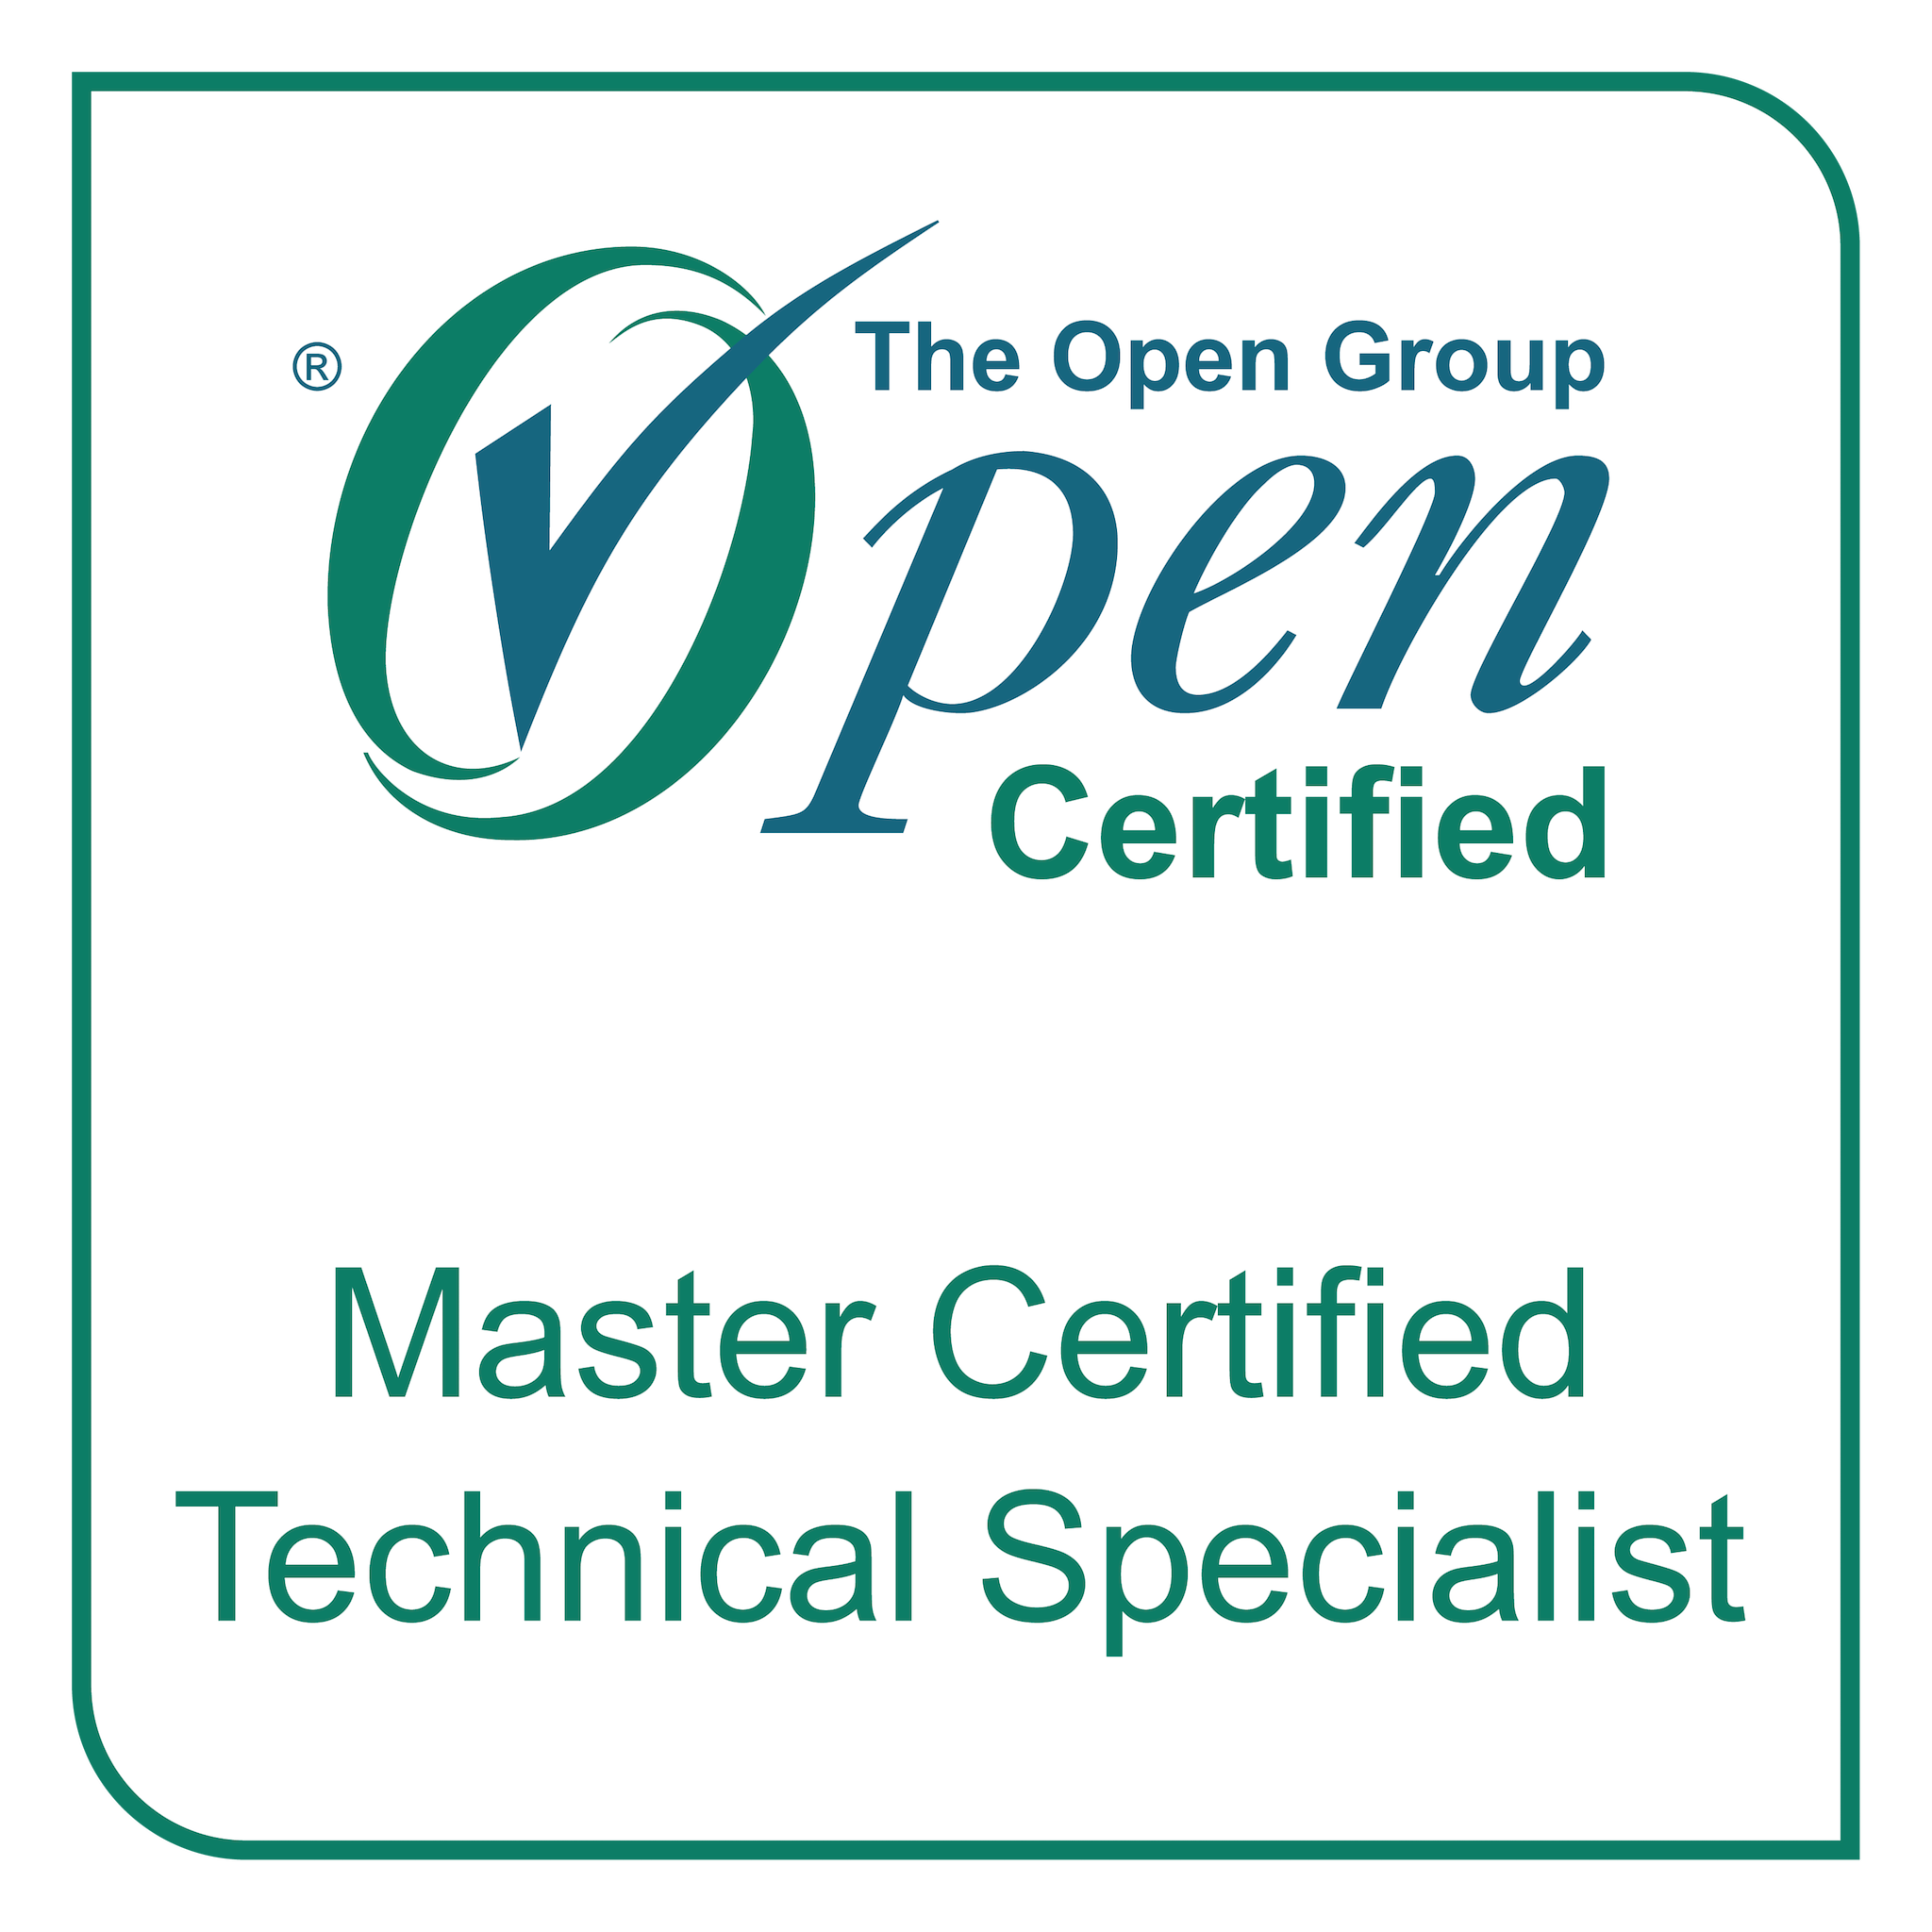 Professional Certification: Master Certified Technical Specialist, Infrastructure Design